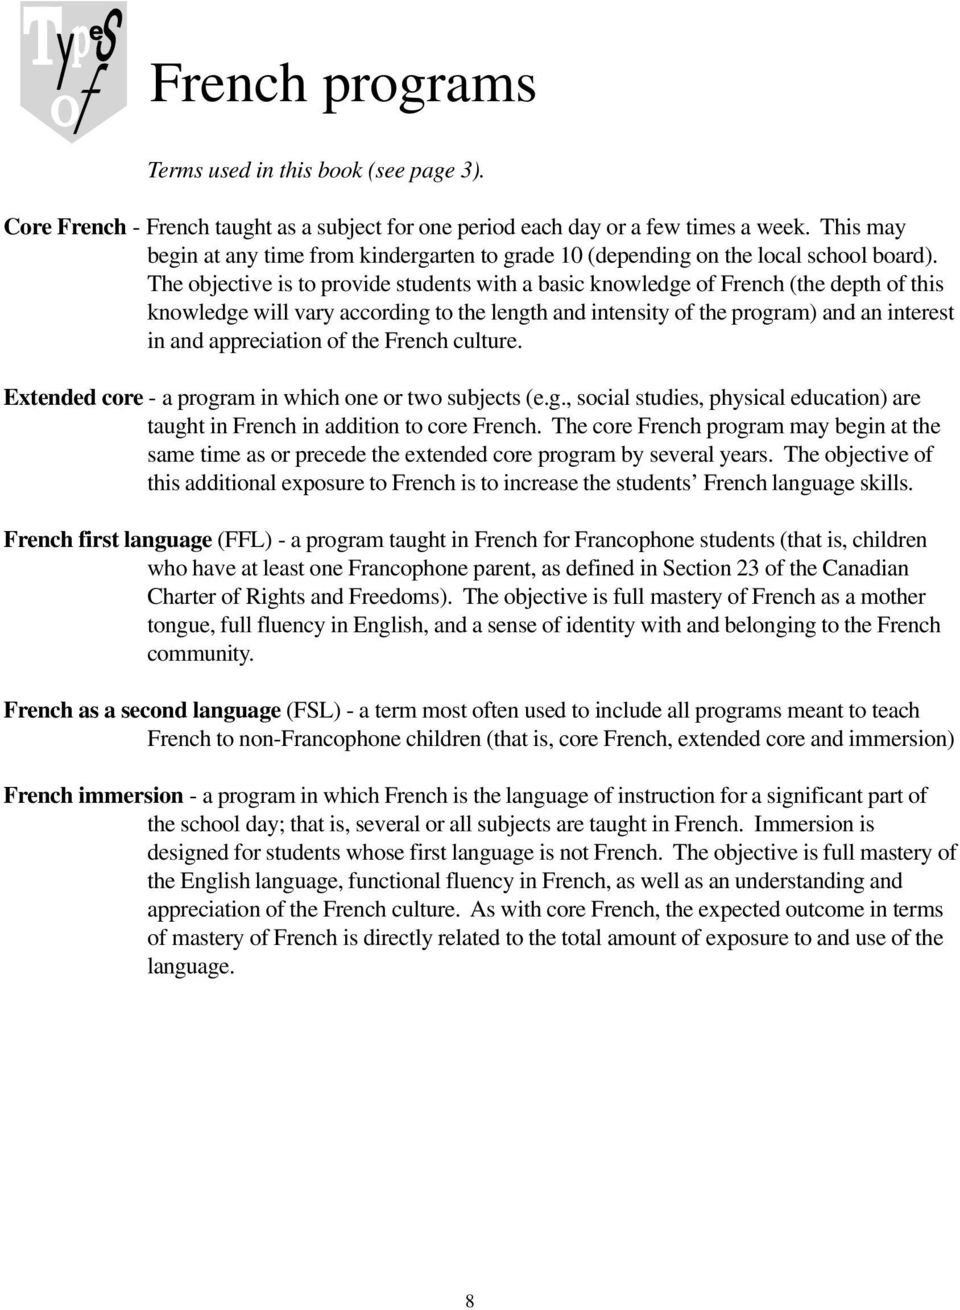 The objective is to provide students with a basic knowledge of French (the depth of this knowledge will vary according to the length and intensity of the program) and an interest in and appreciation